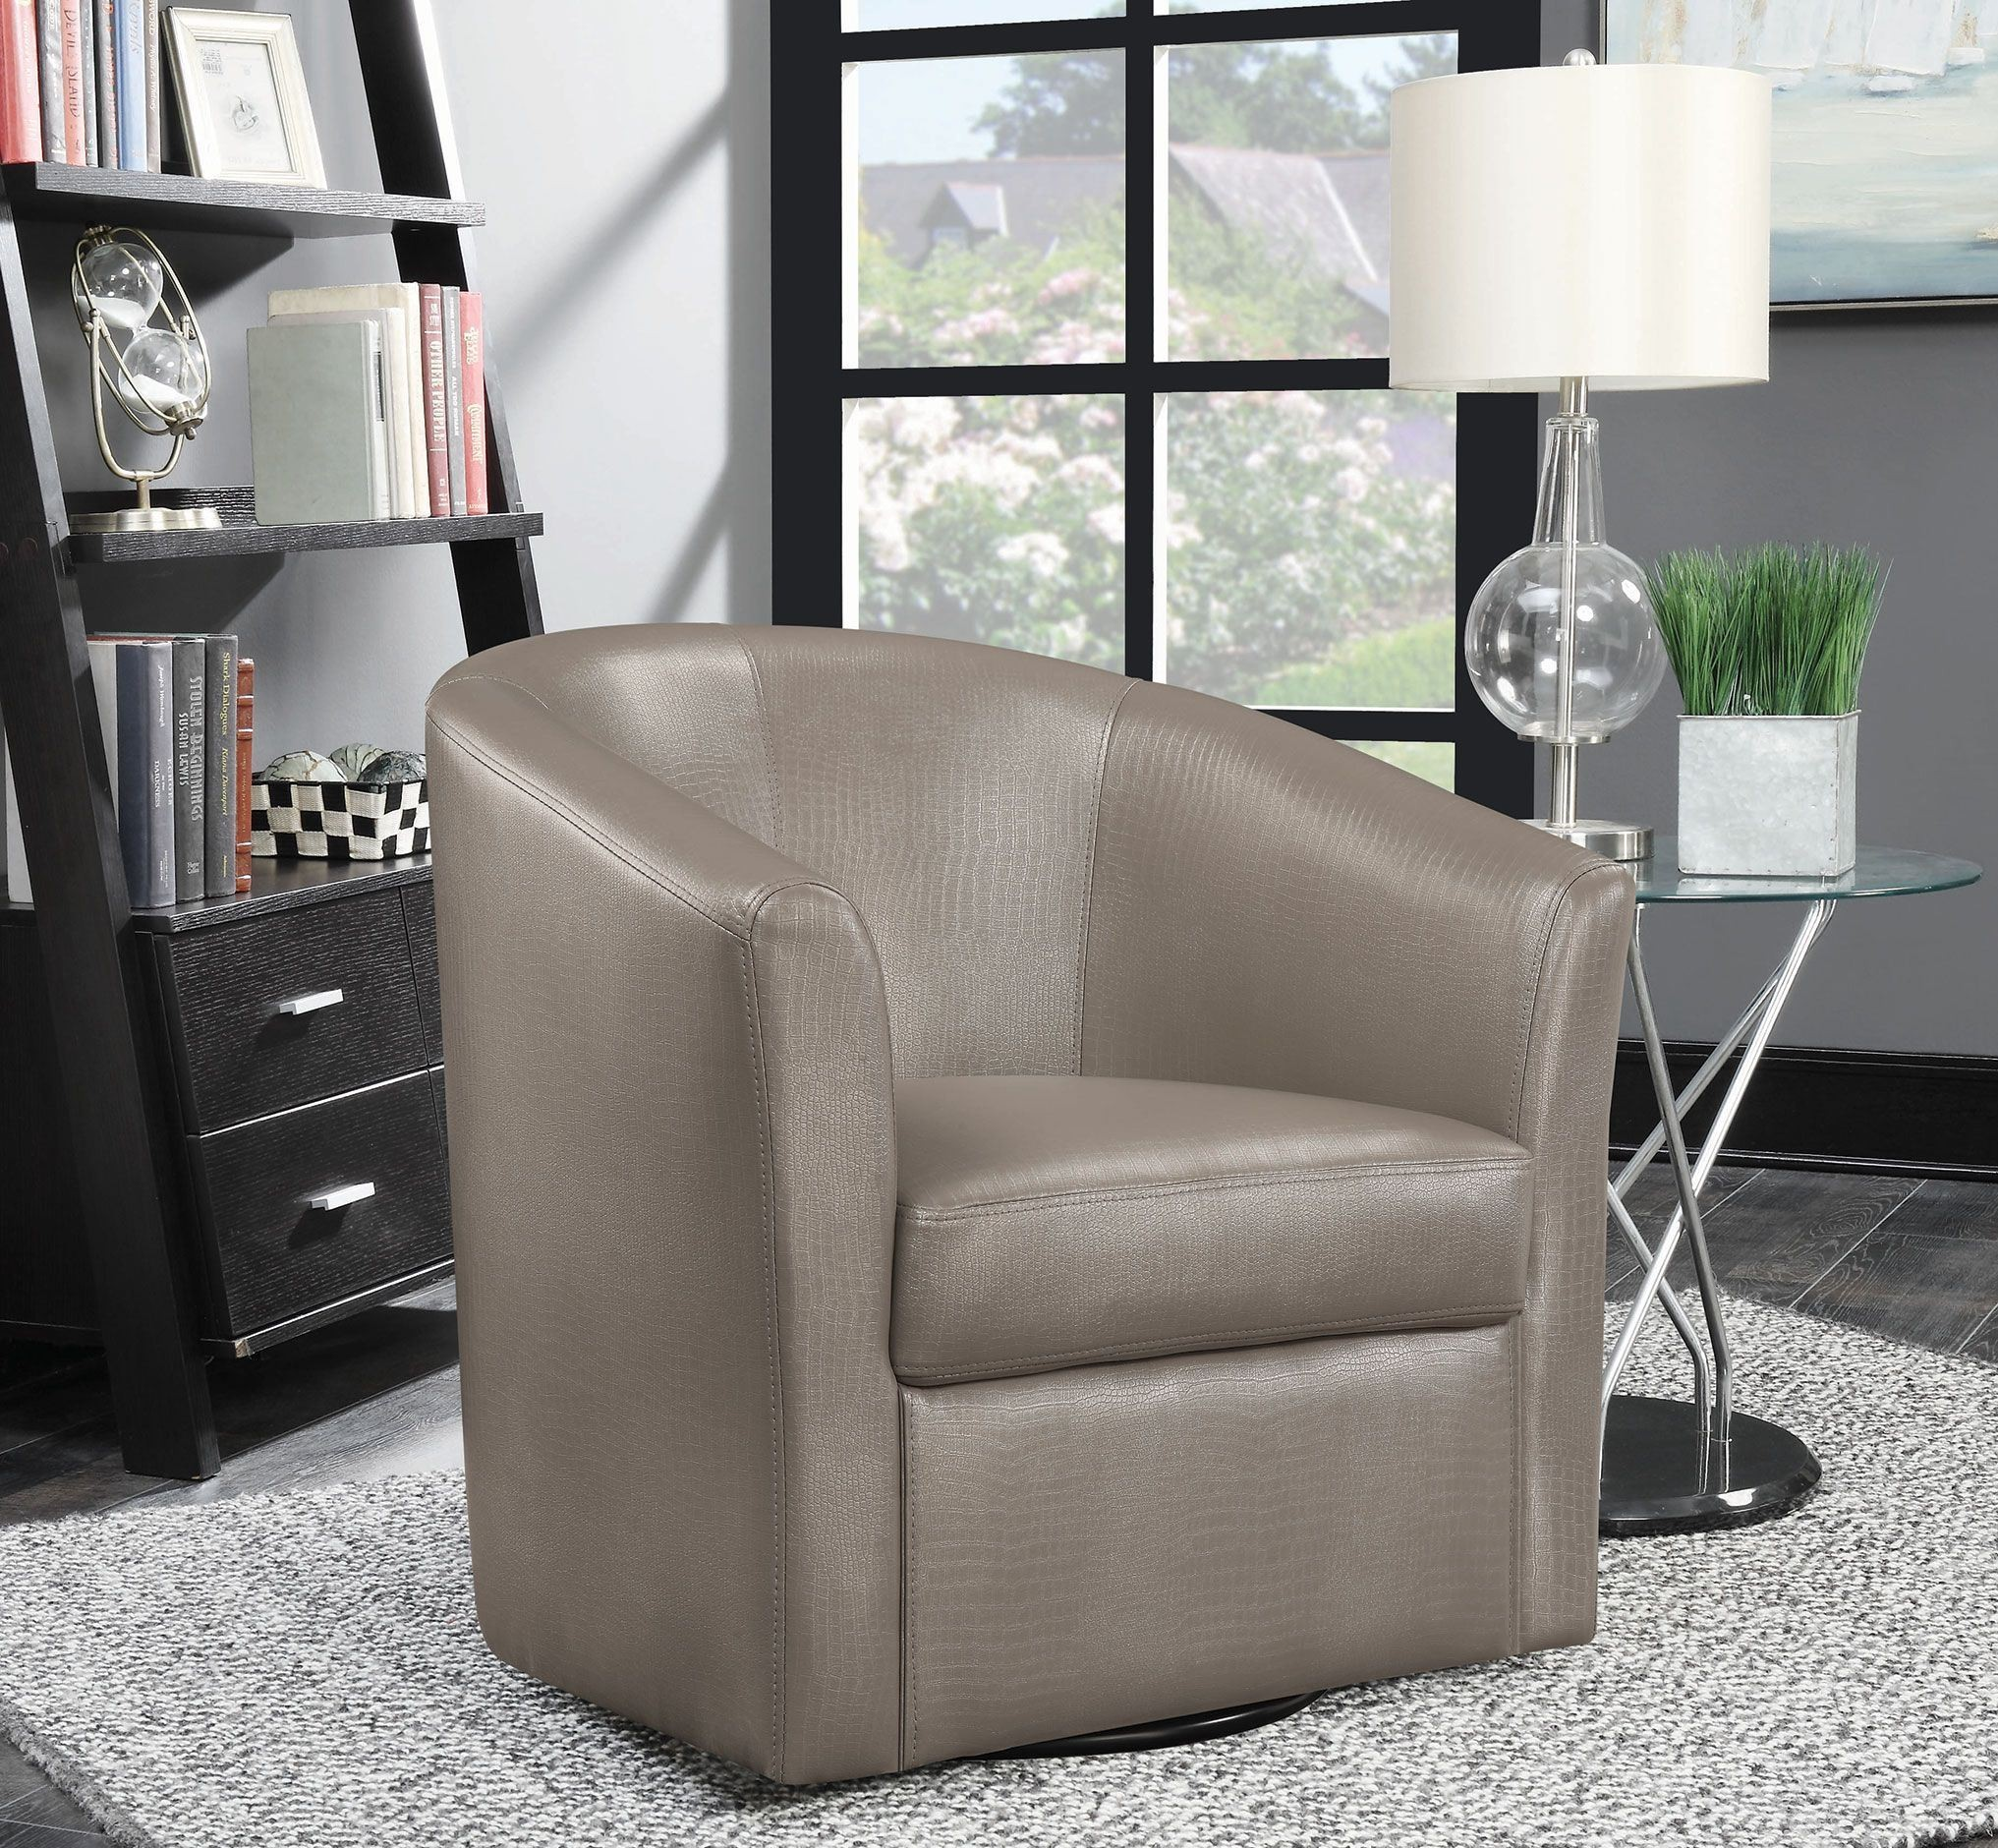 Champagne Chair Champagne Accent Chair 902726 Coaster Furniture